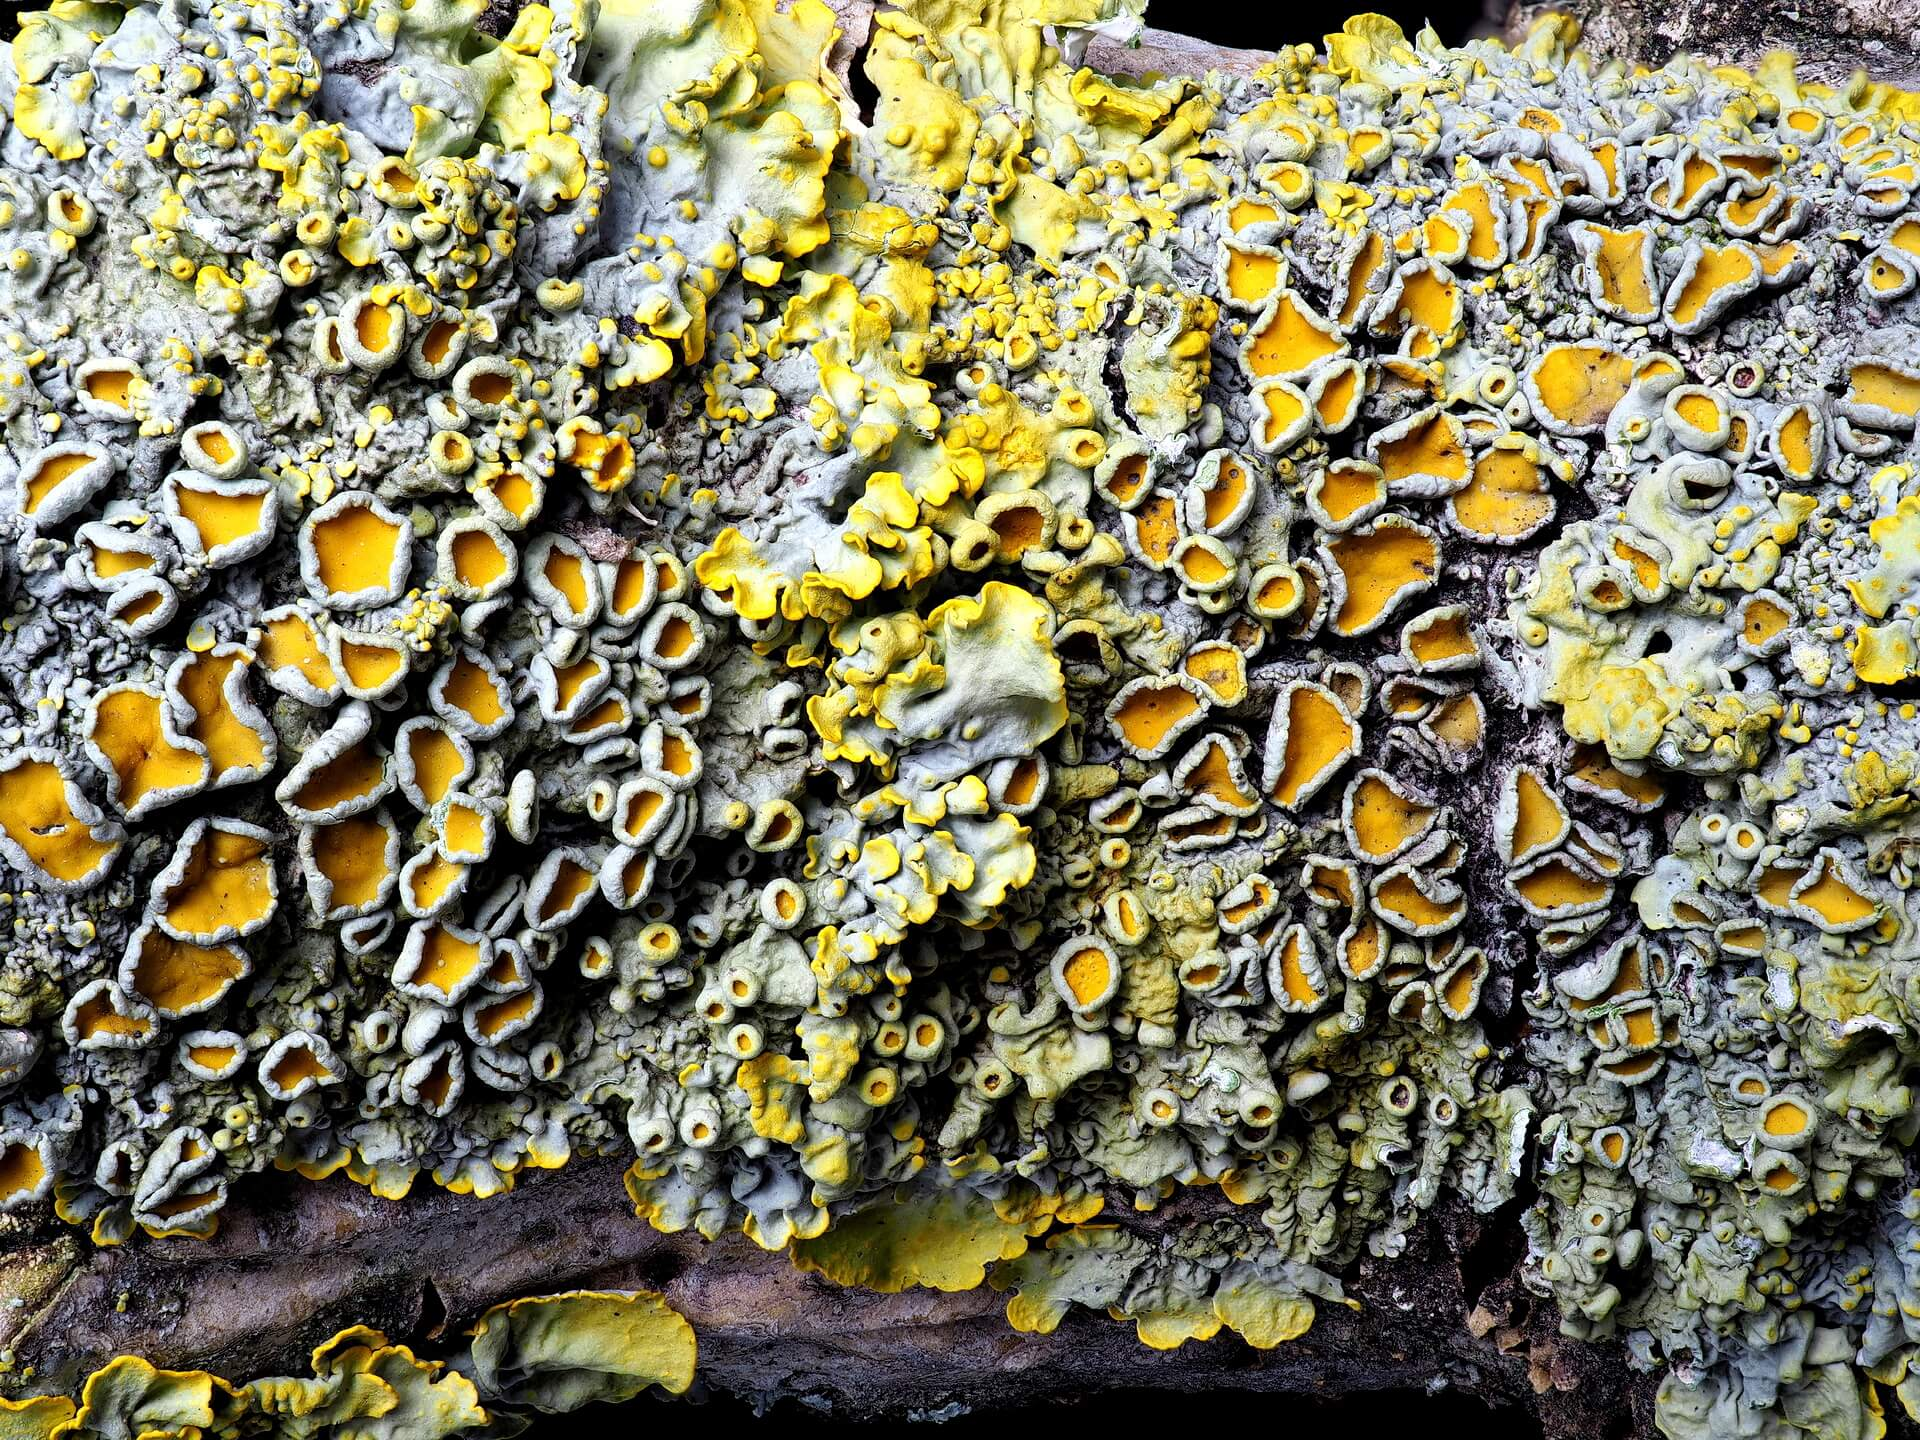 Macro shot showing detailed view of sunburst lichen.